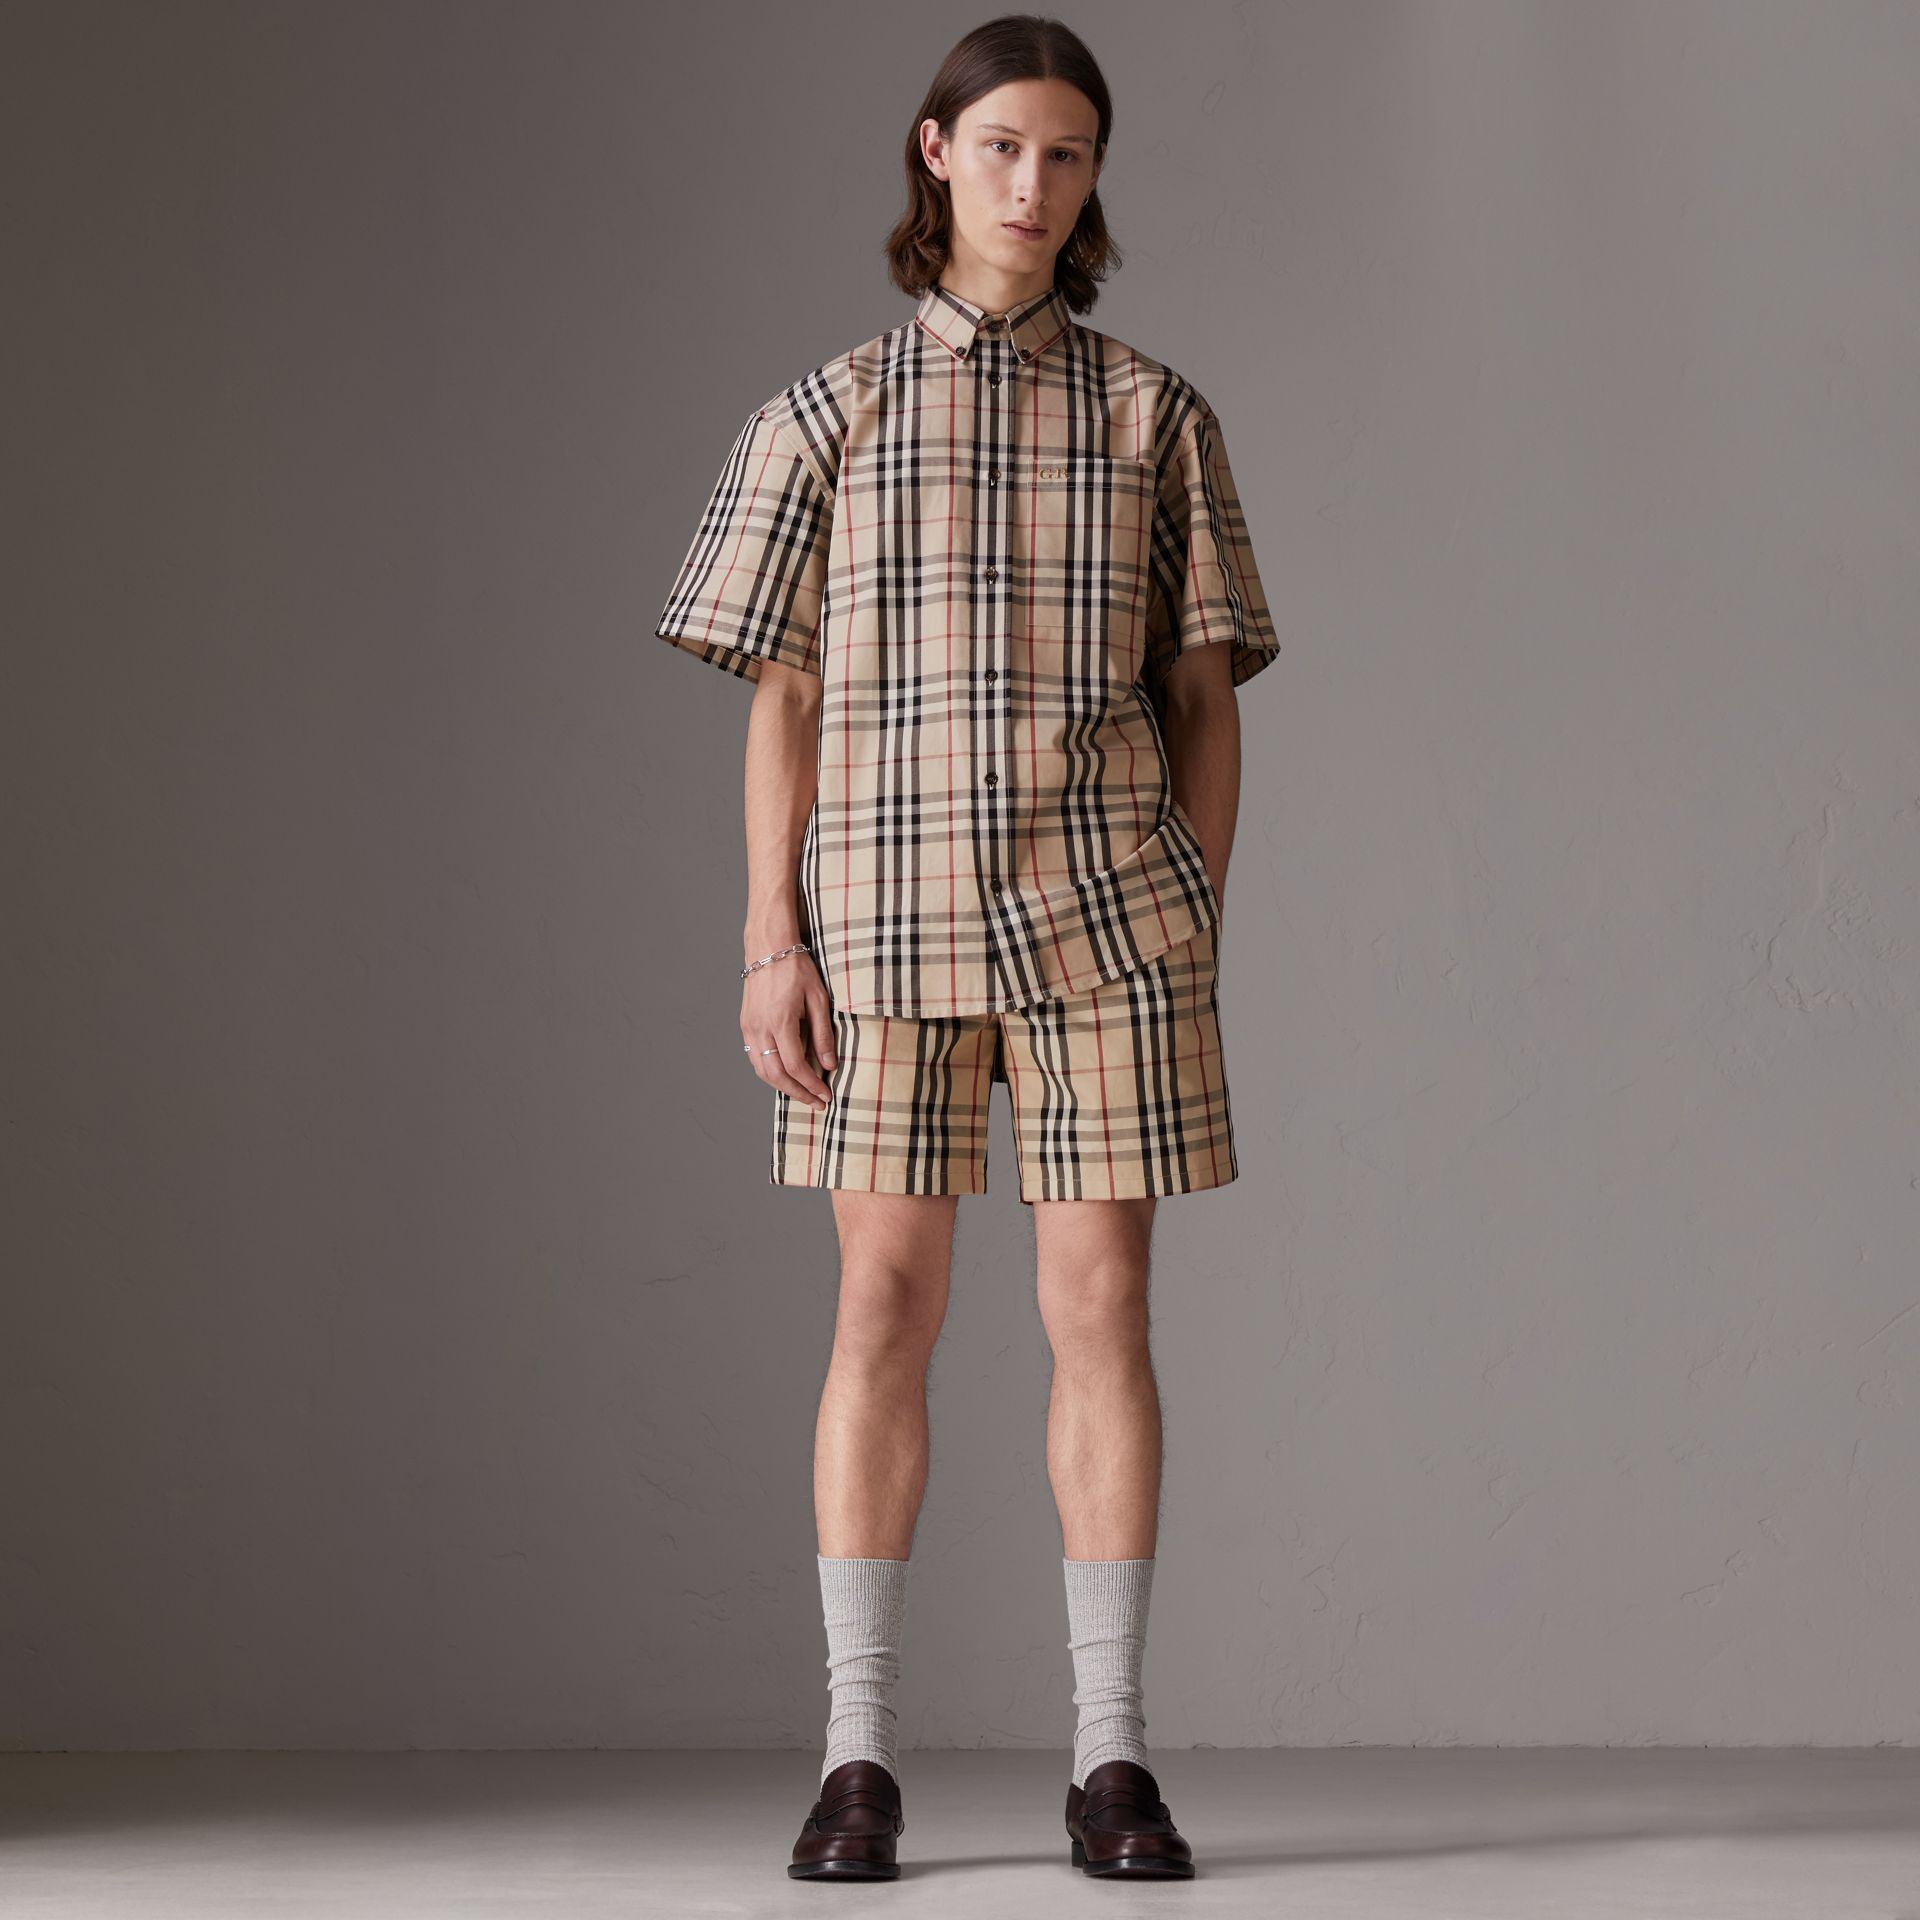 Gosha x Burberry Short-sleeve Check Shirt in Honey | Burberry Hong Kong - gallery image 2